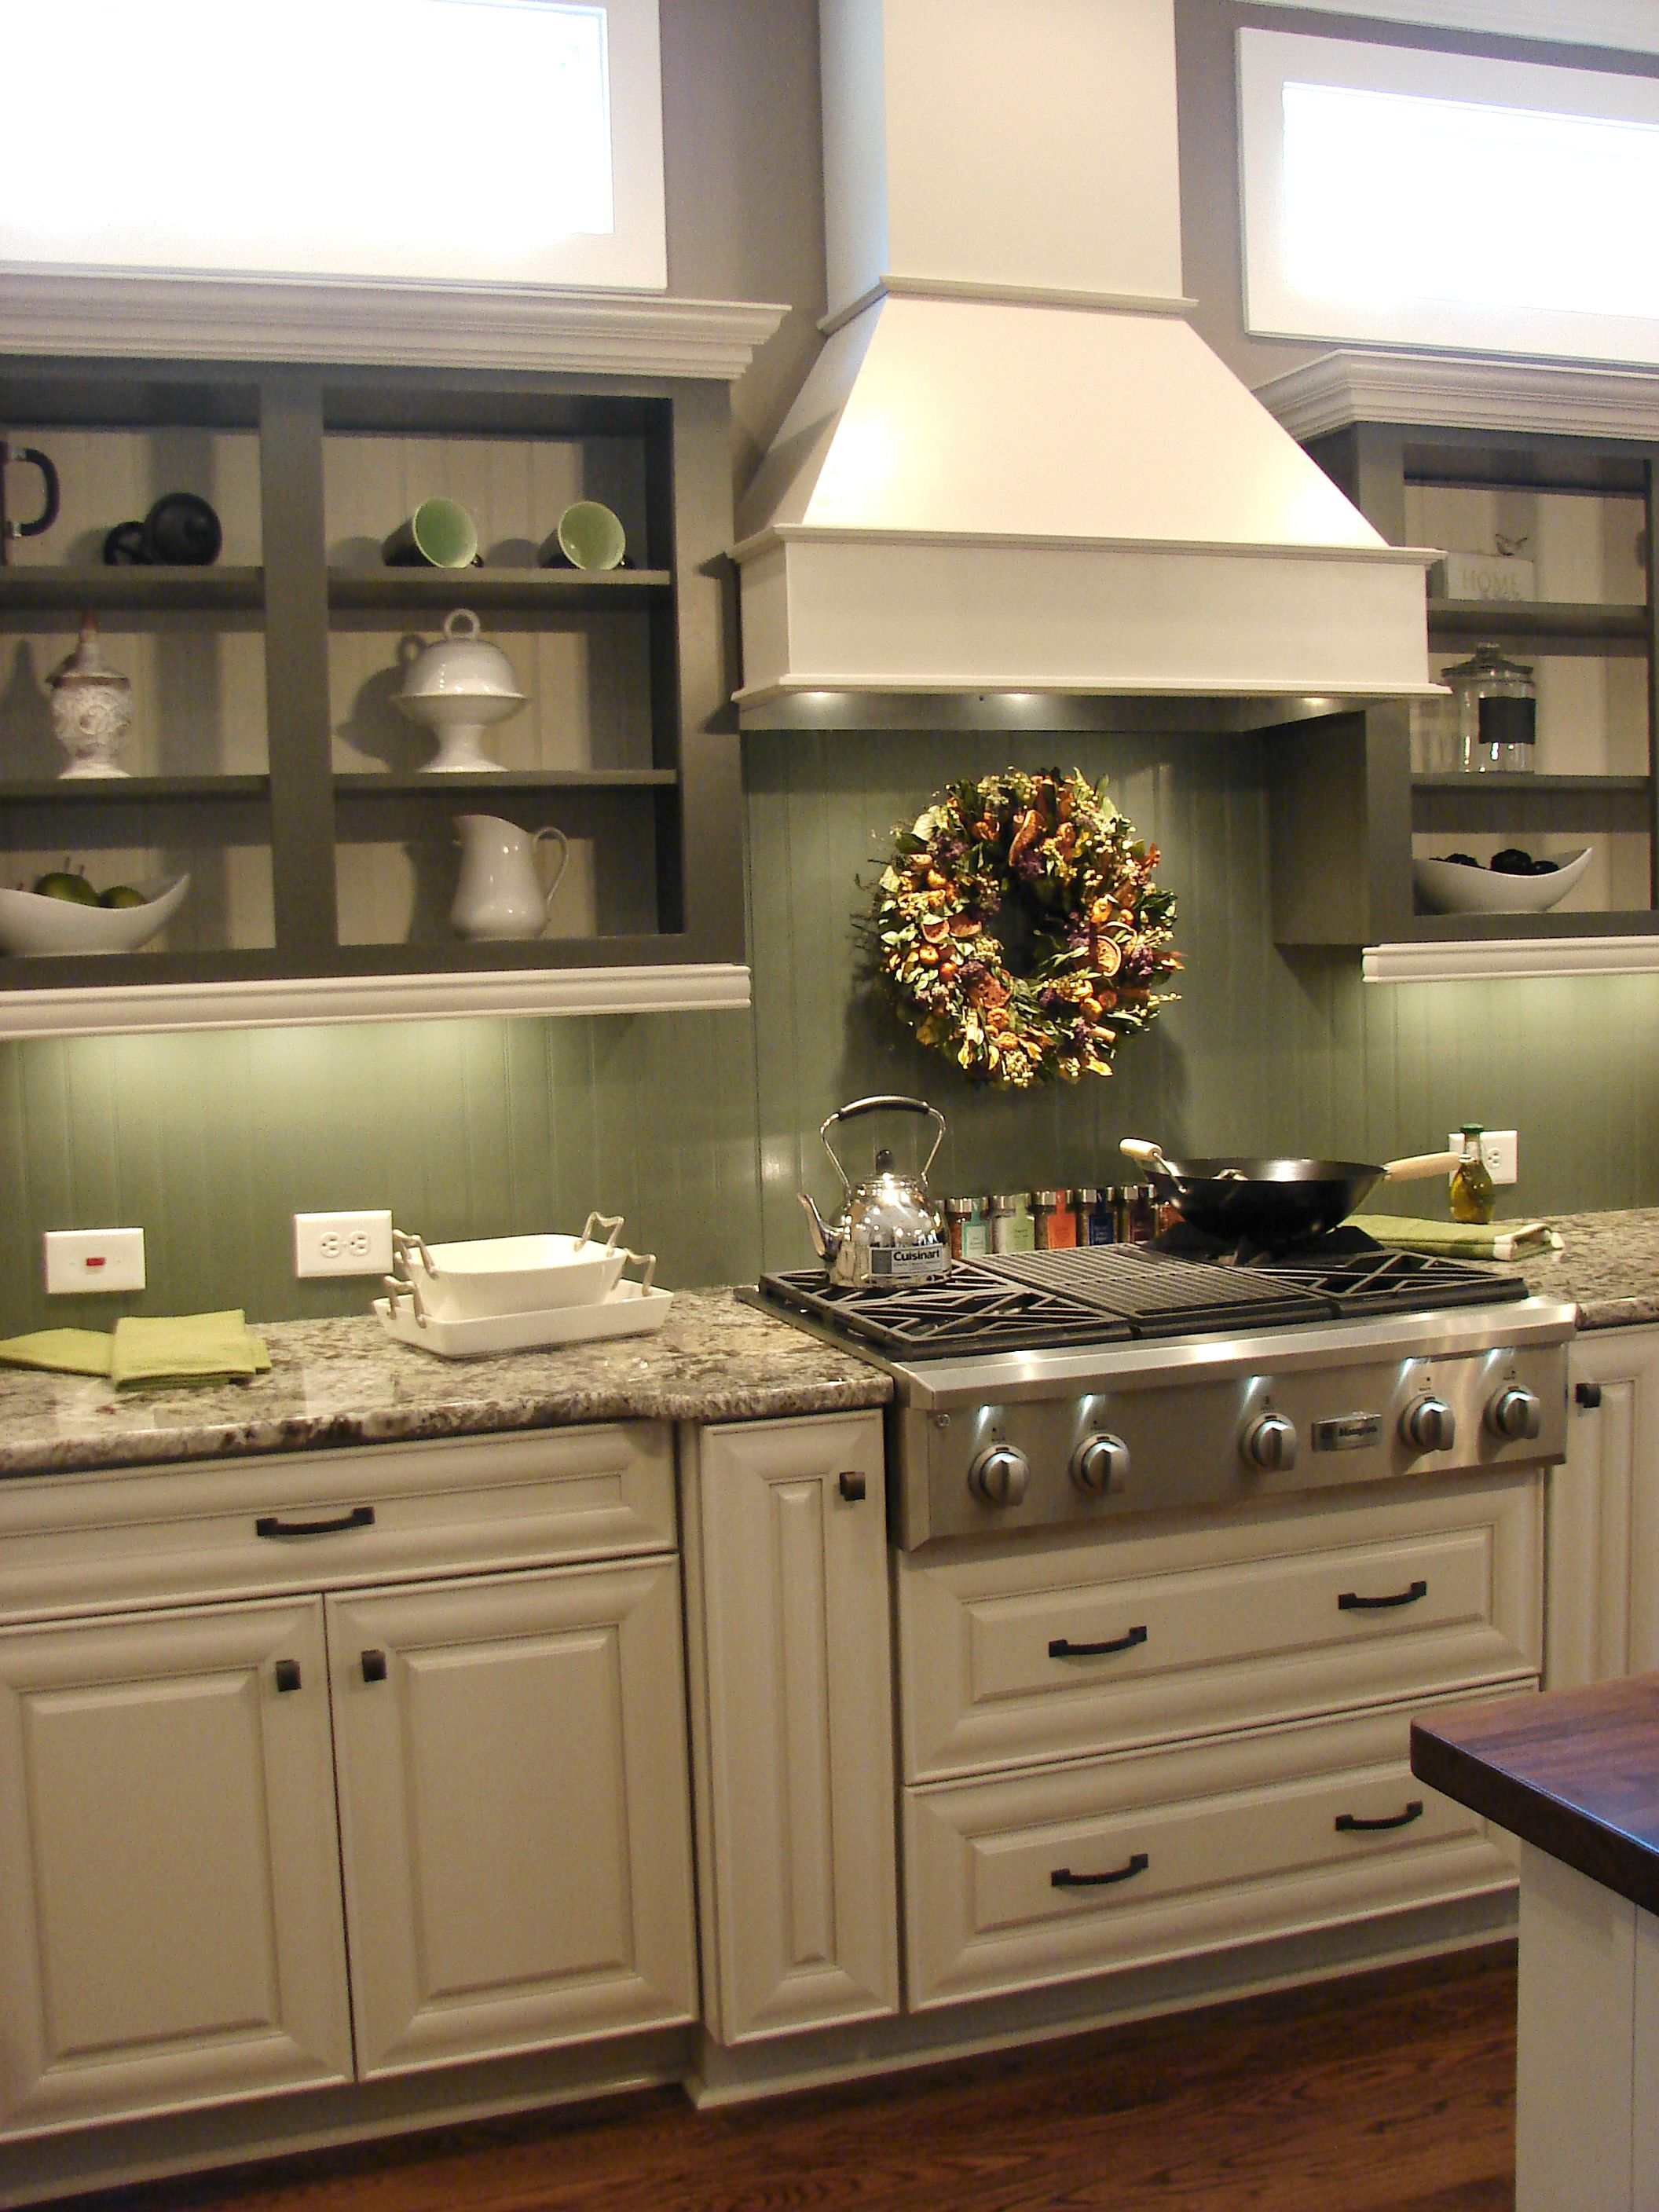 Beadboard backsplash in a high gloss paint either white